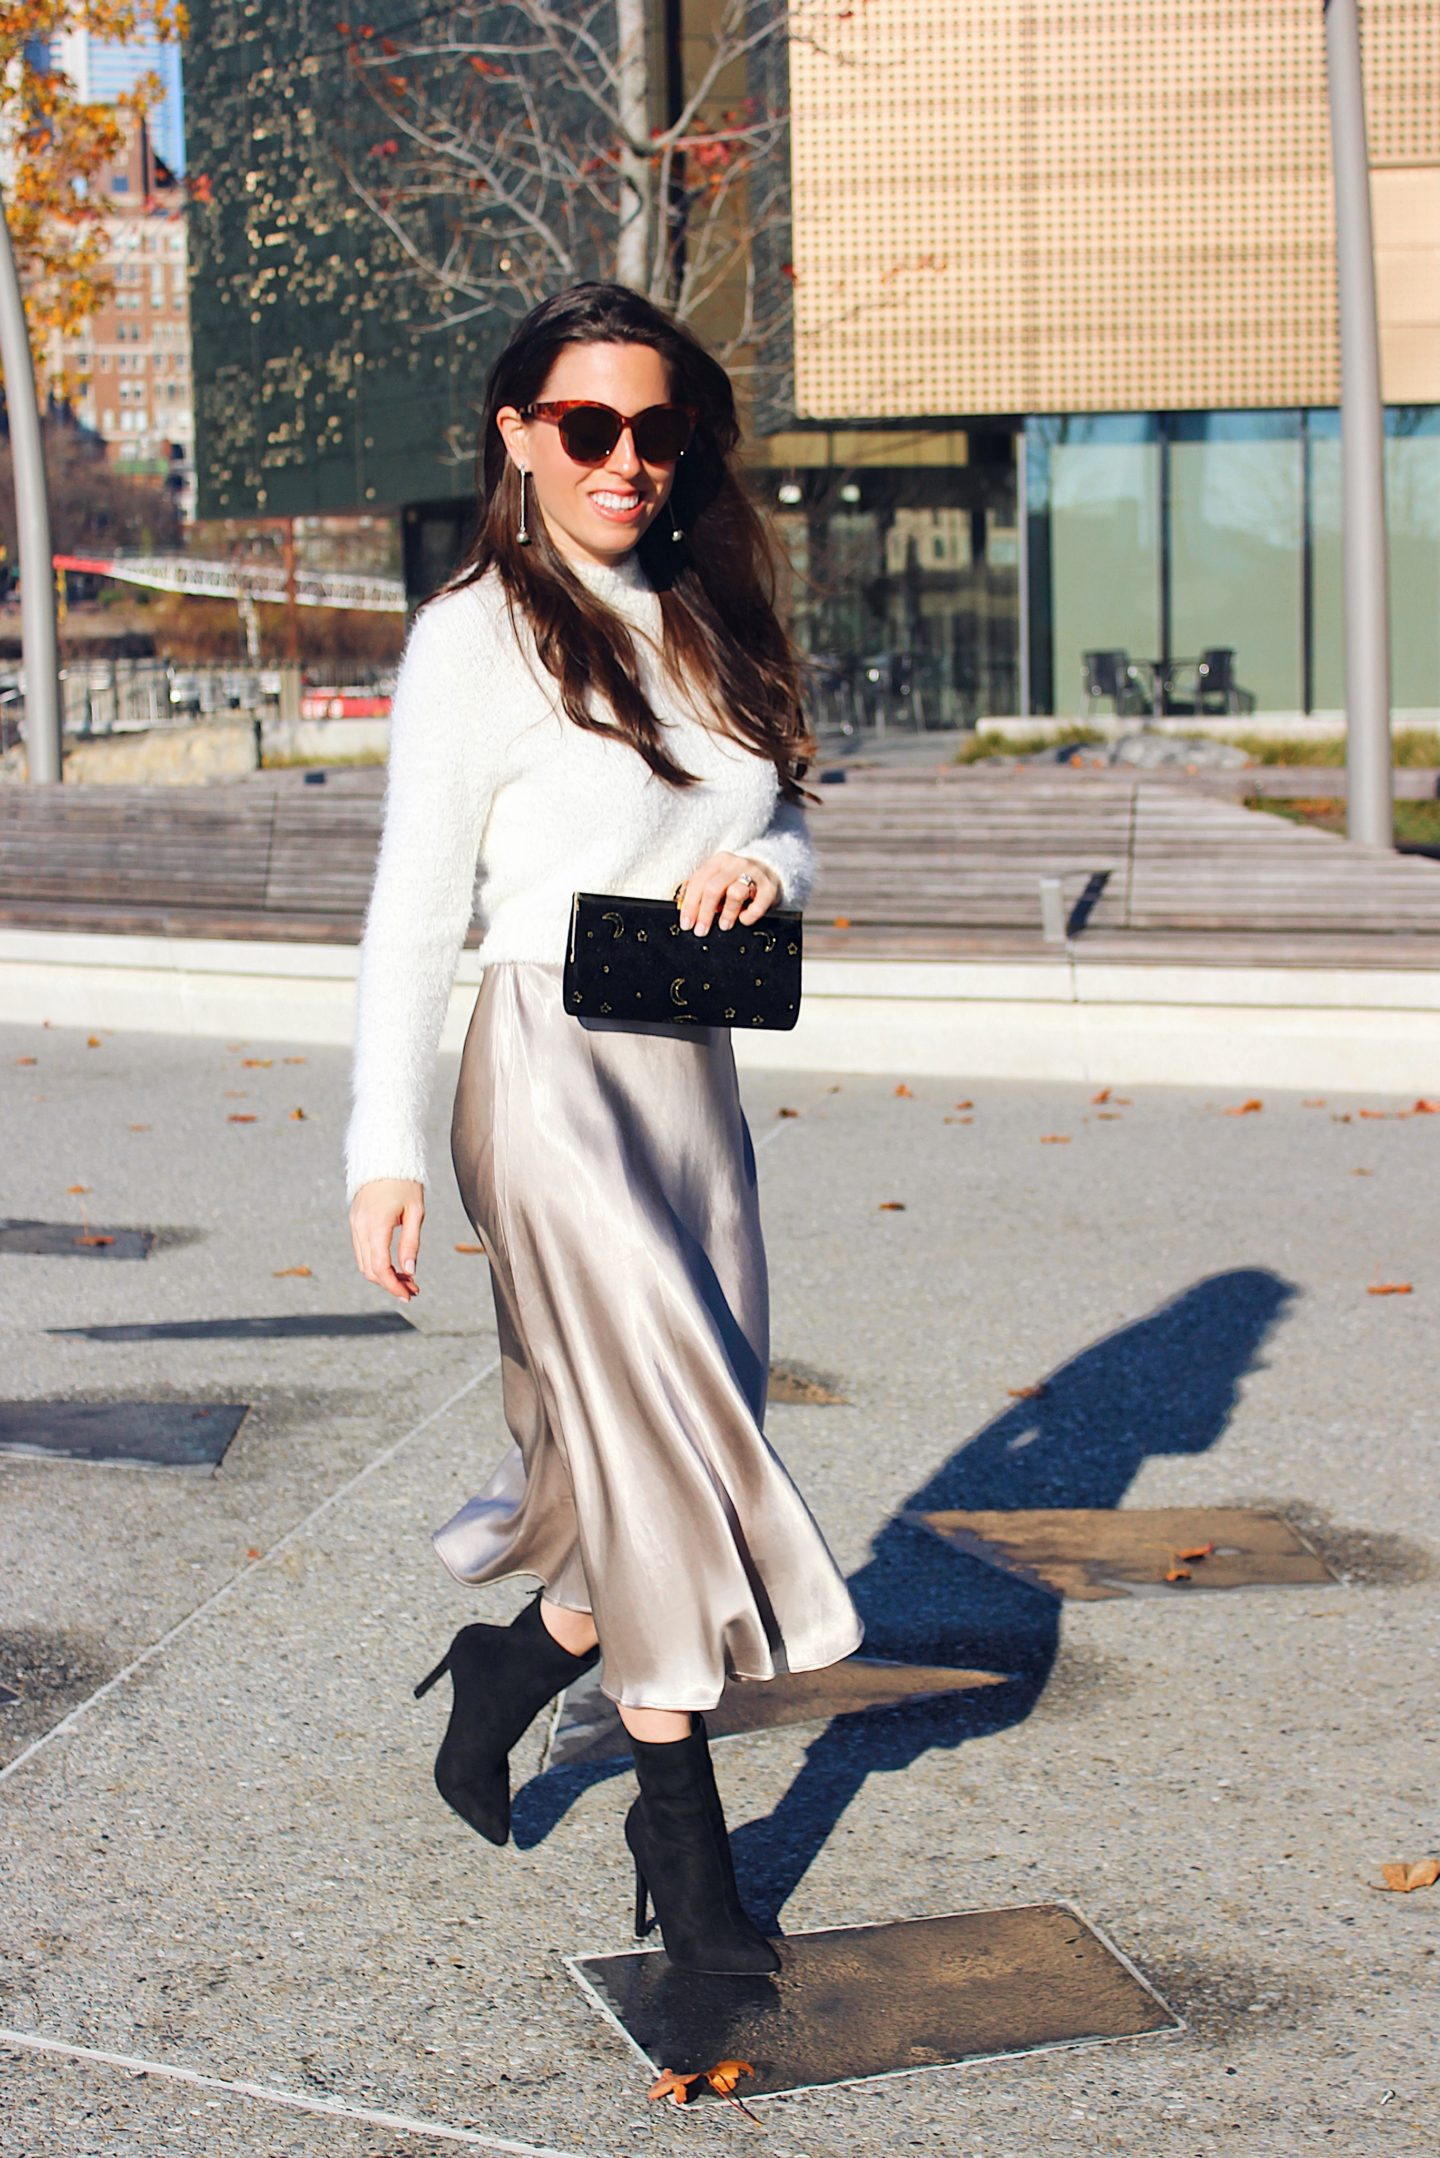 sweater-and-slip-skirt-outfit-idea-ana-florentina